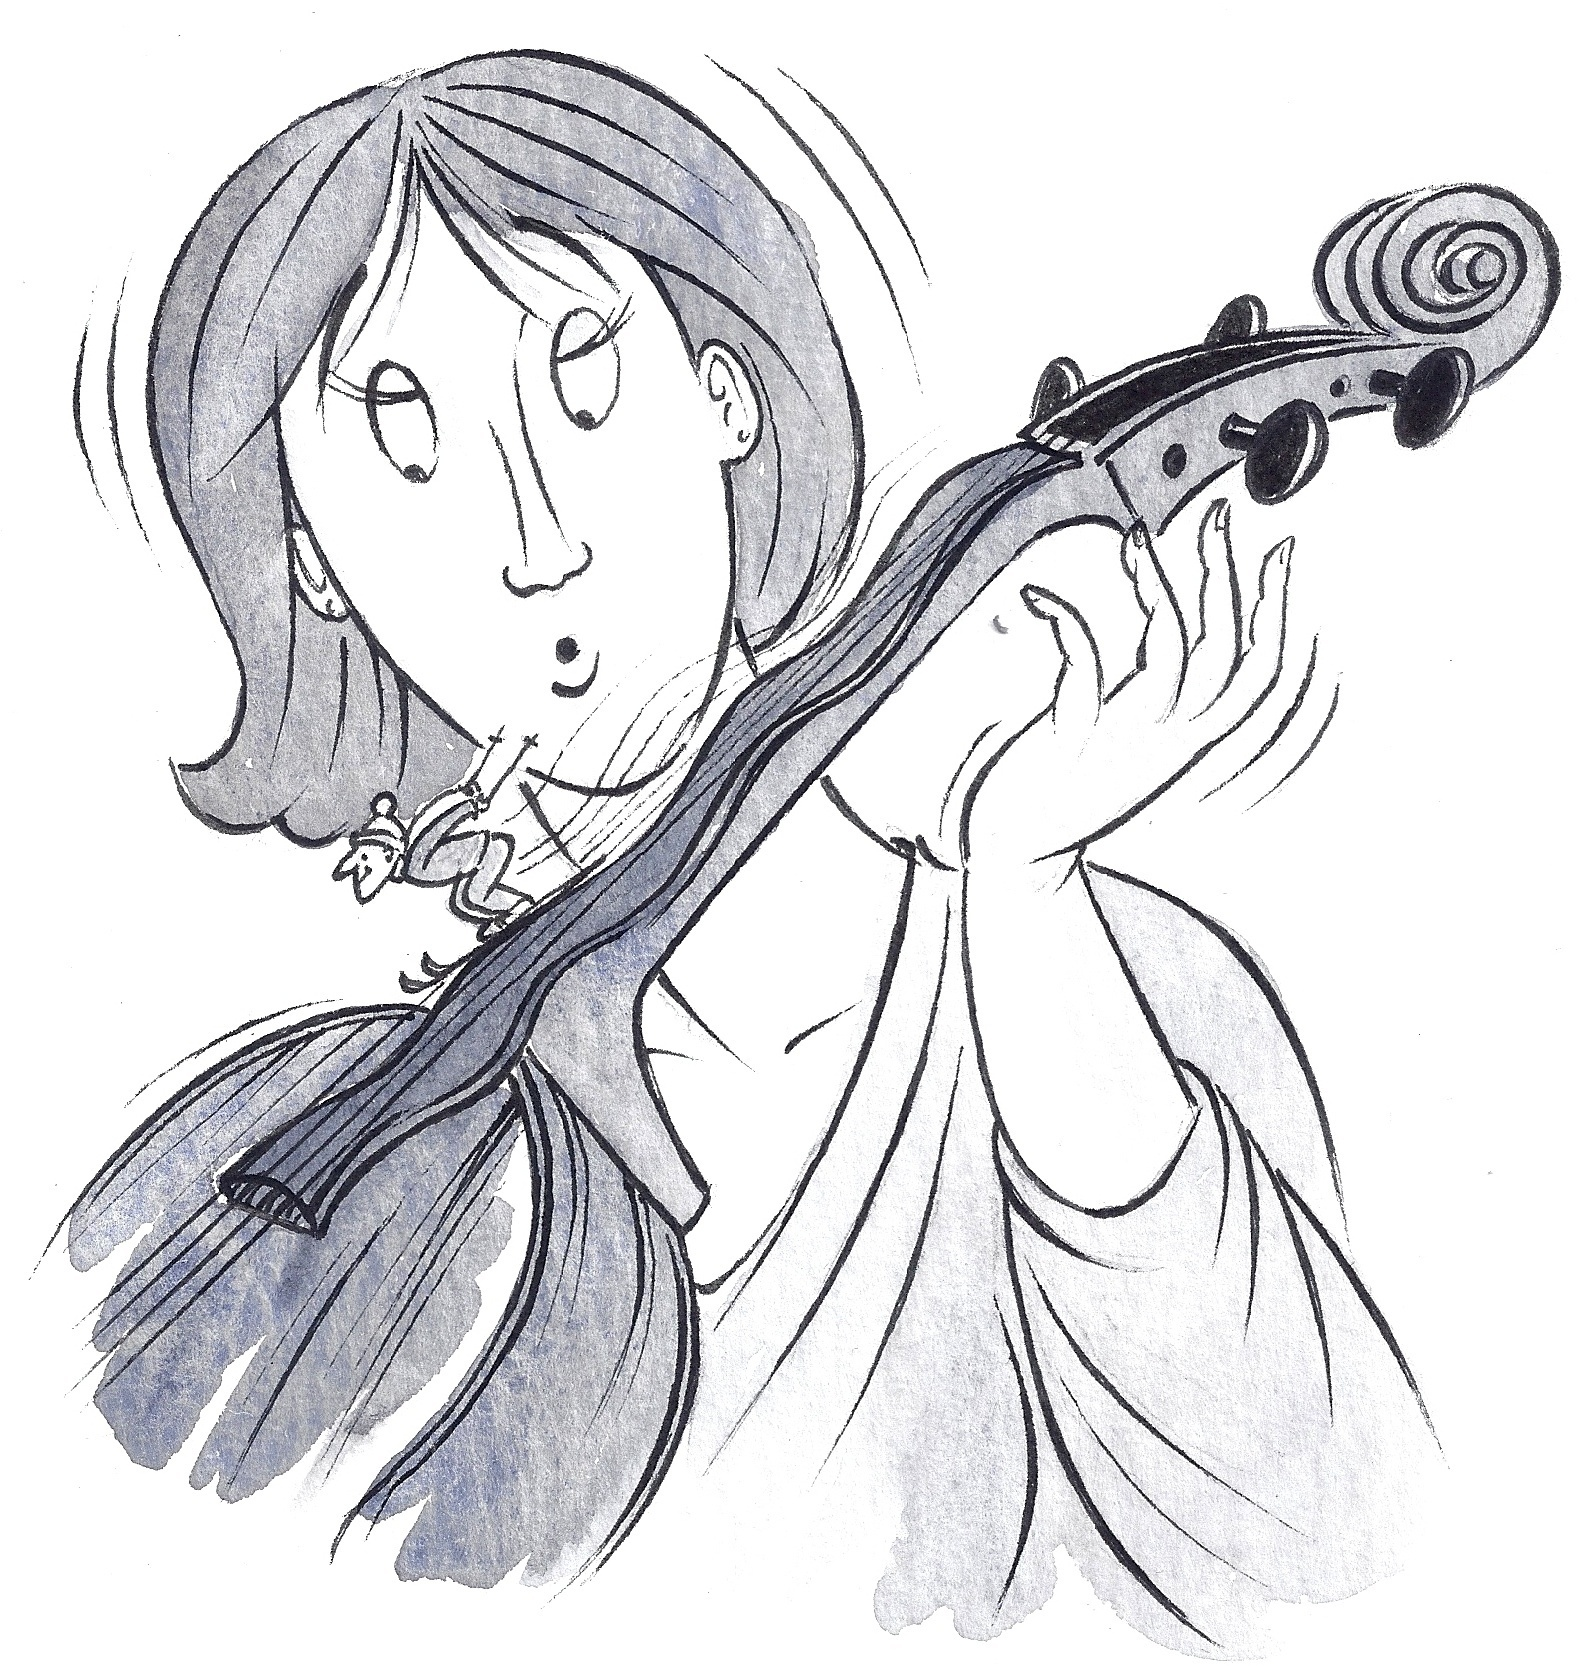 technical cello articles - Cartoon of worn and rippled fingerboard